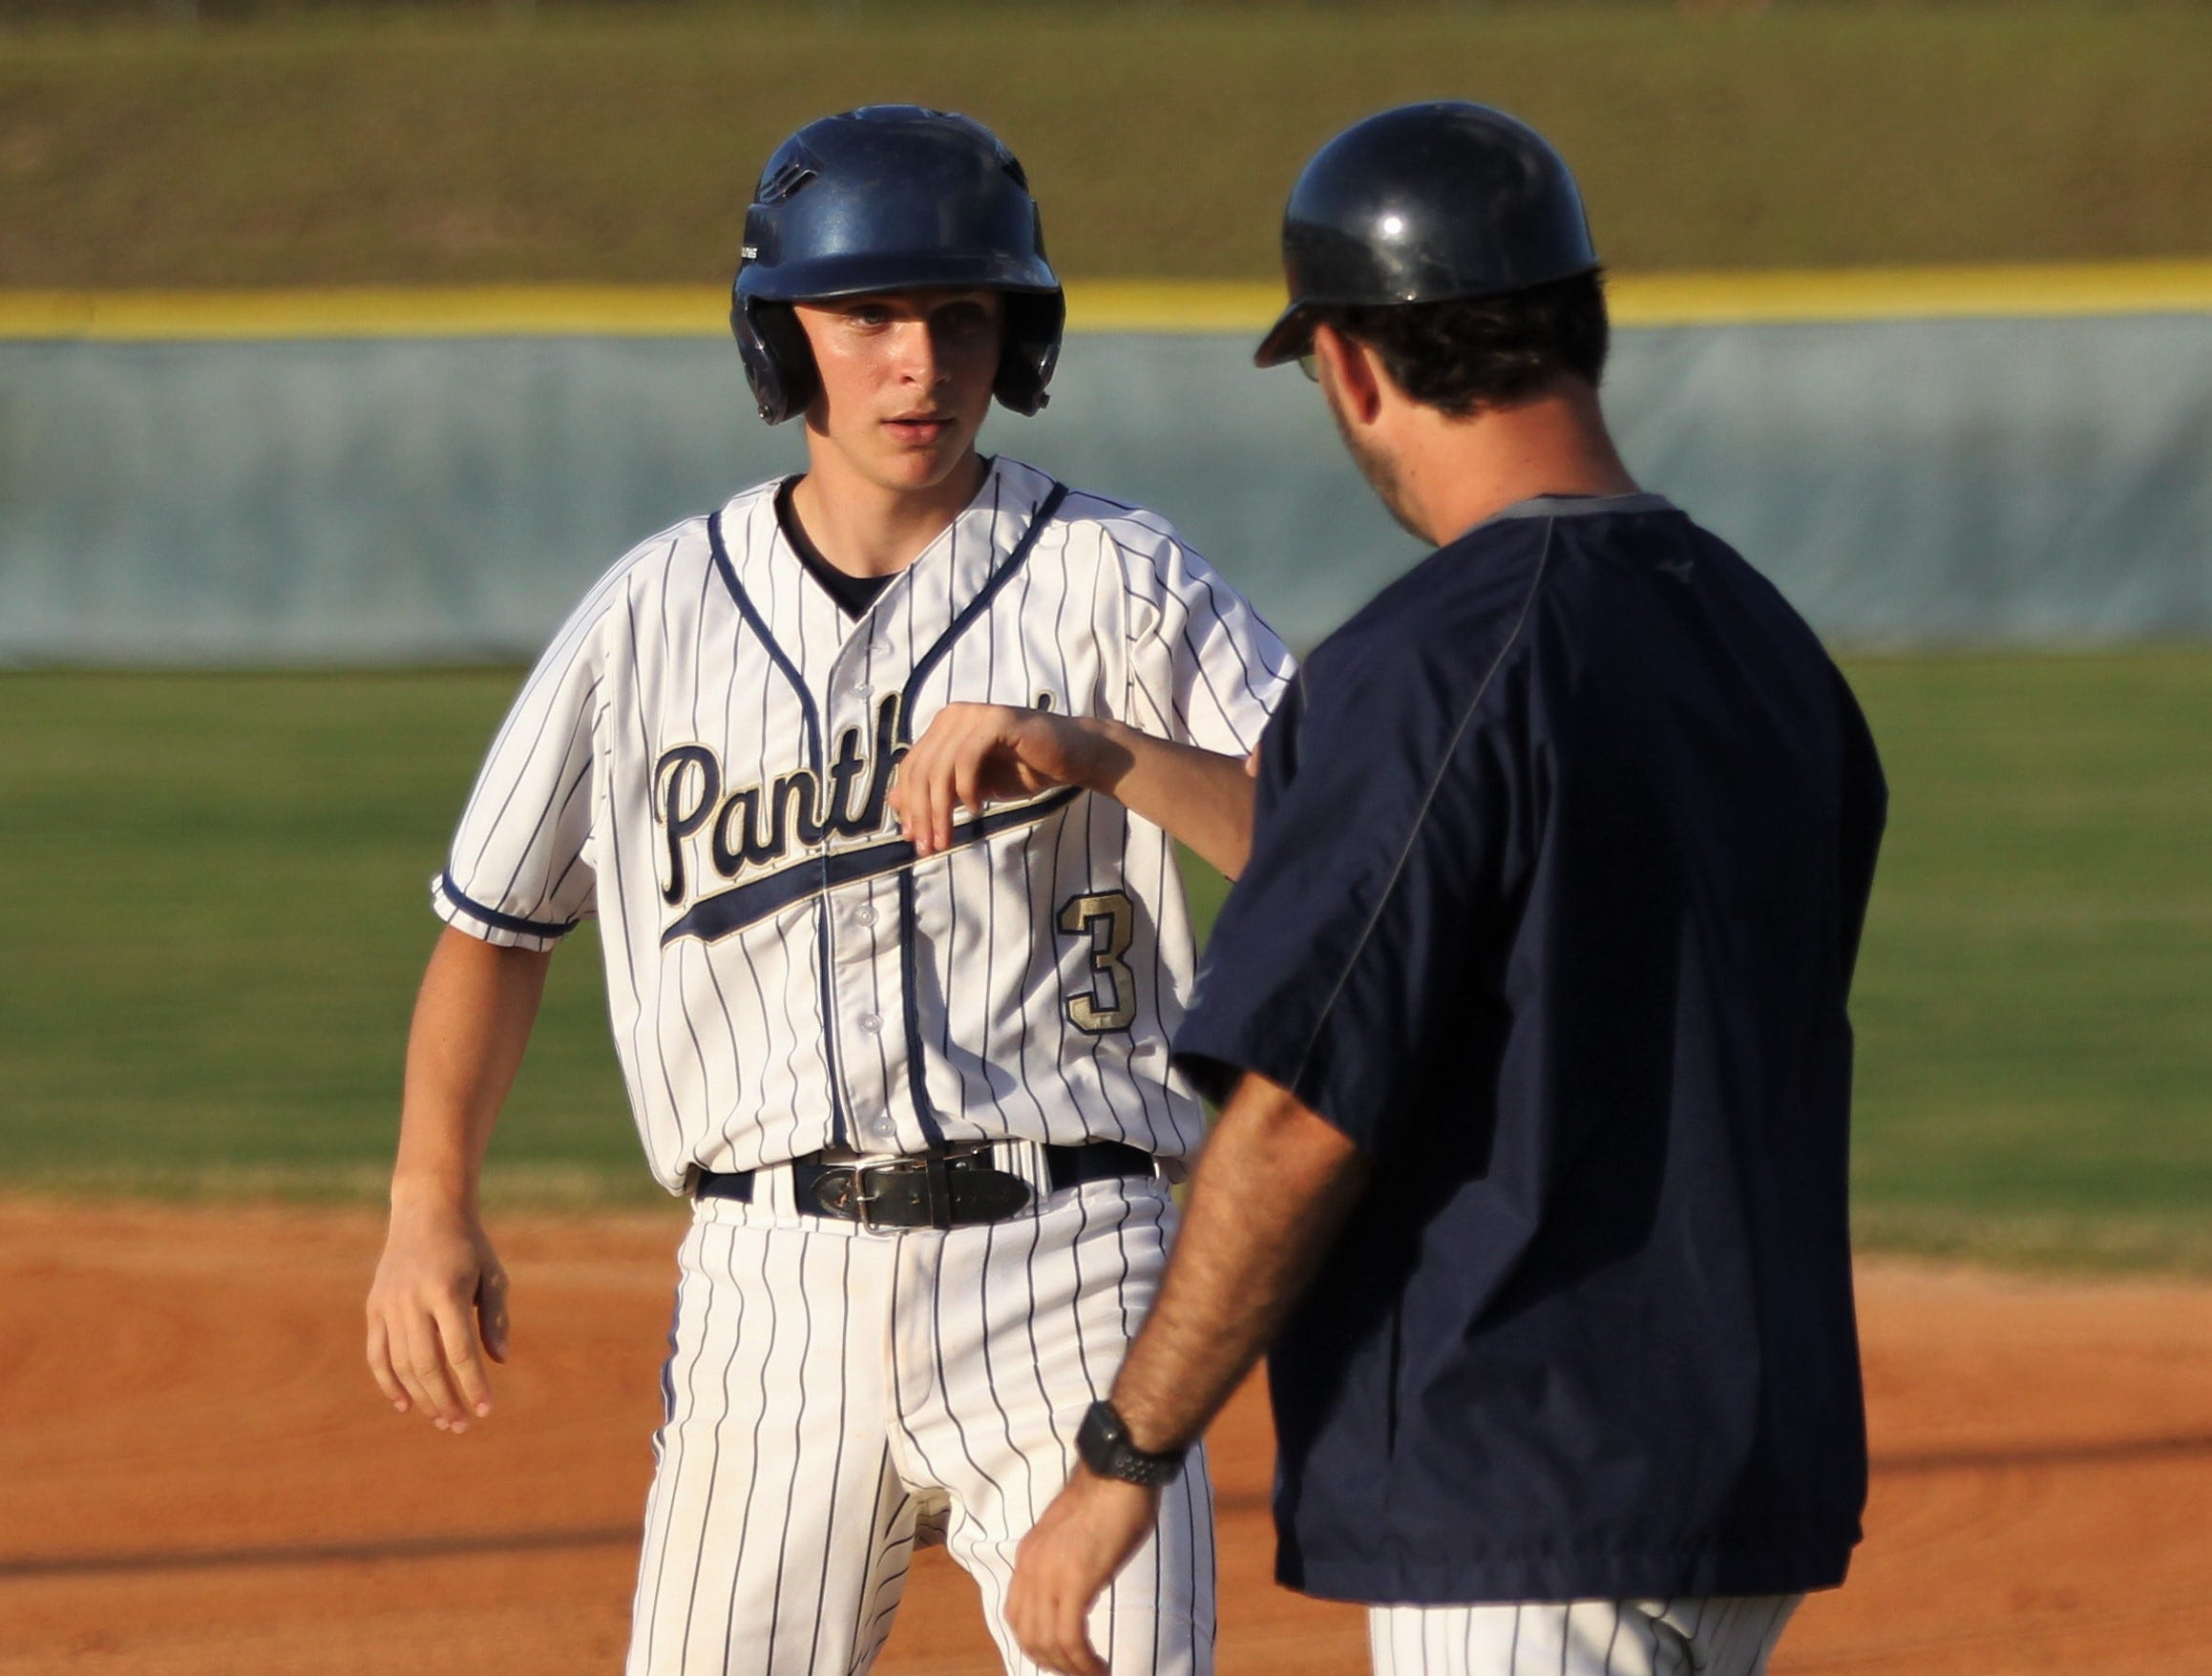 St. John Paul II sophomore Nathan Whitley gets congratulated after a hit as Florida High won 11-3 on the road at St. John Paul II on Tuesday, April 3, 2010.